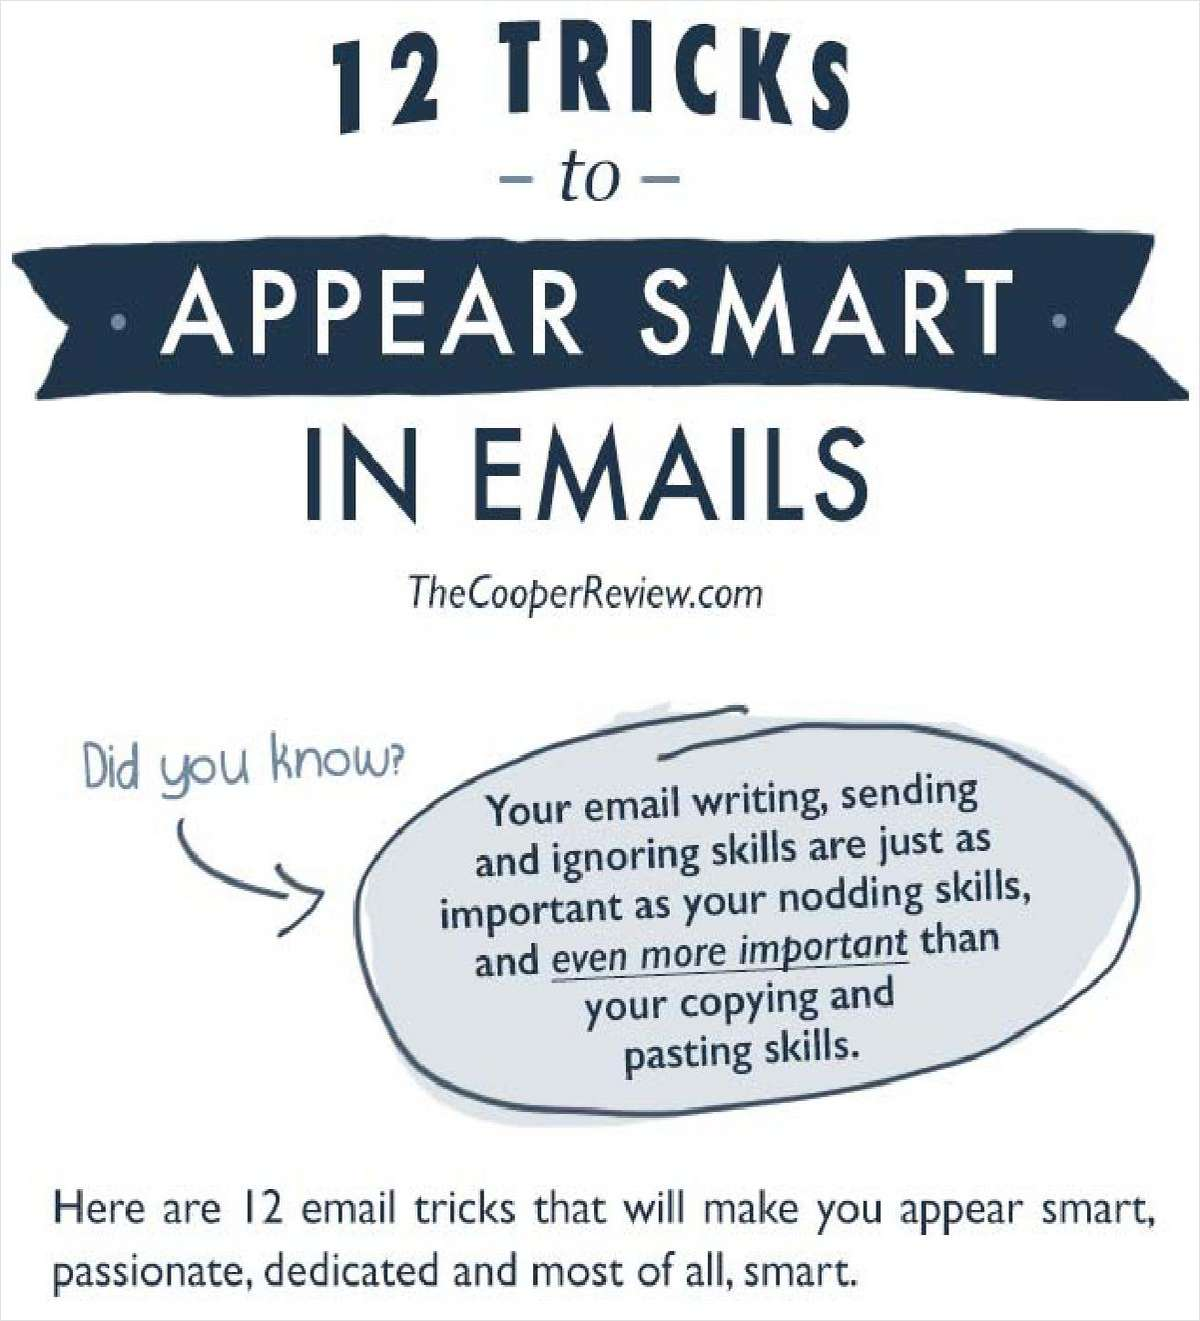 12 Tricks to Appear Smart in Email